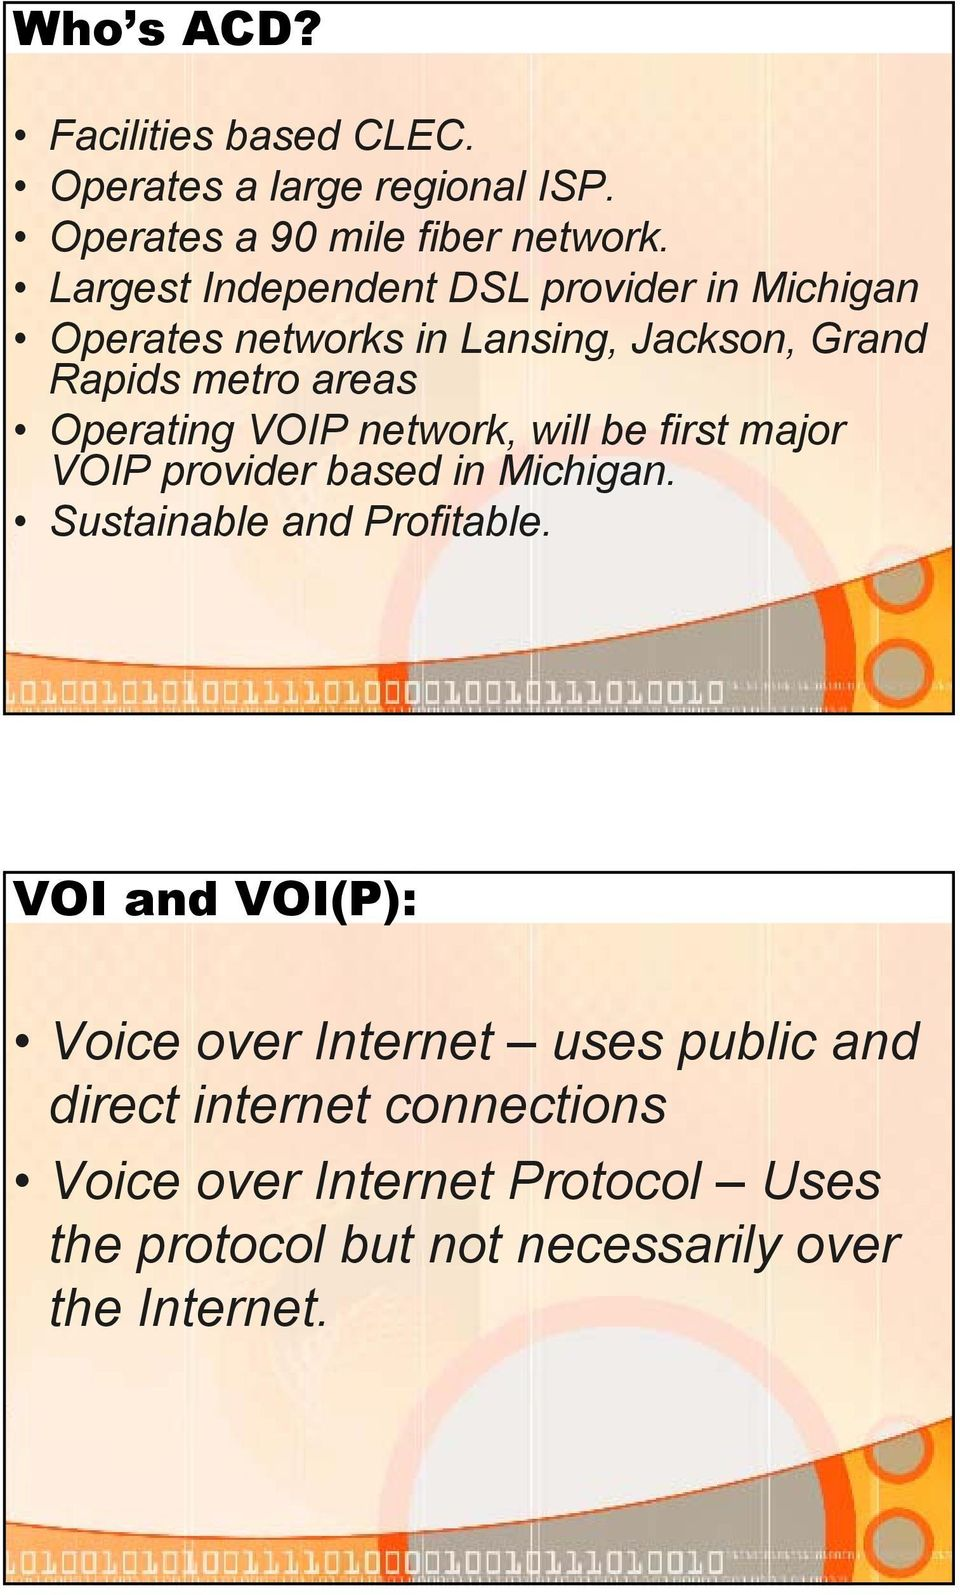 VOIP network, will be first major VOIP provider based in Michigan. Sustainable and Profitable.